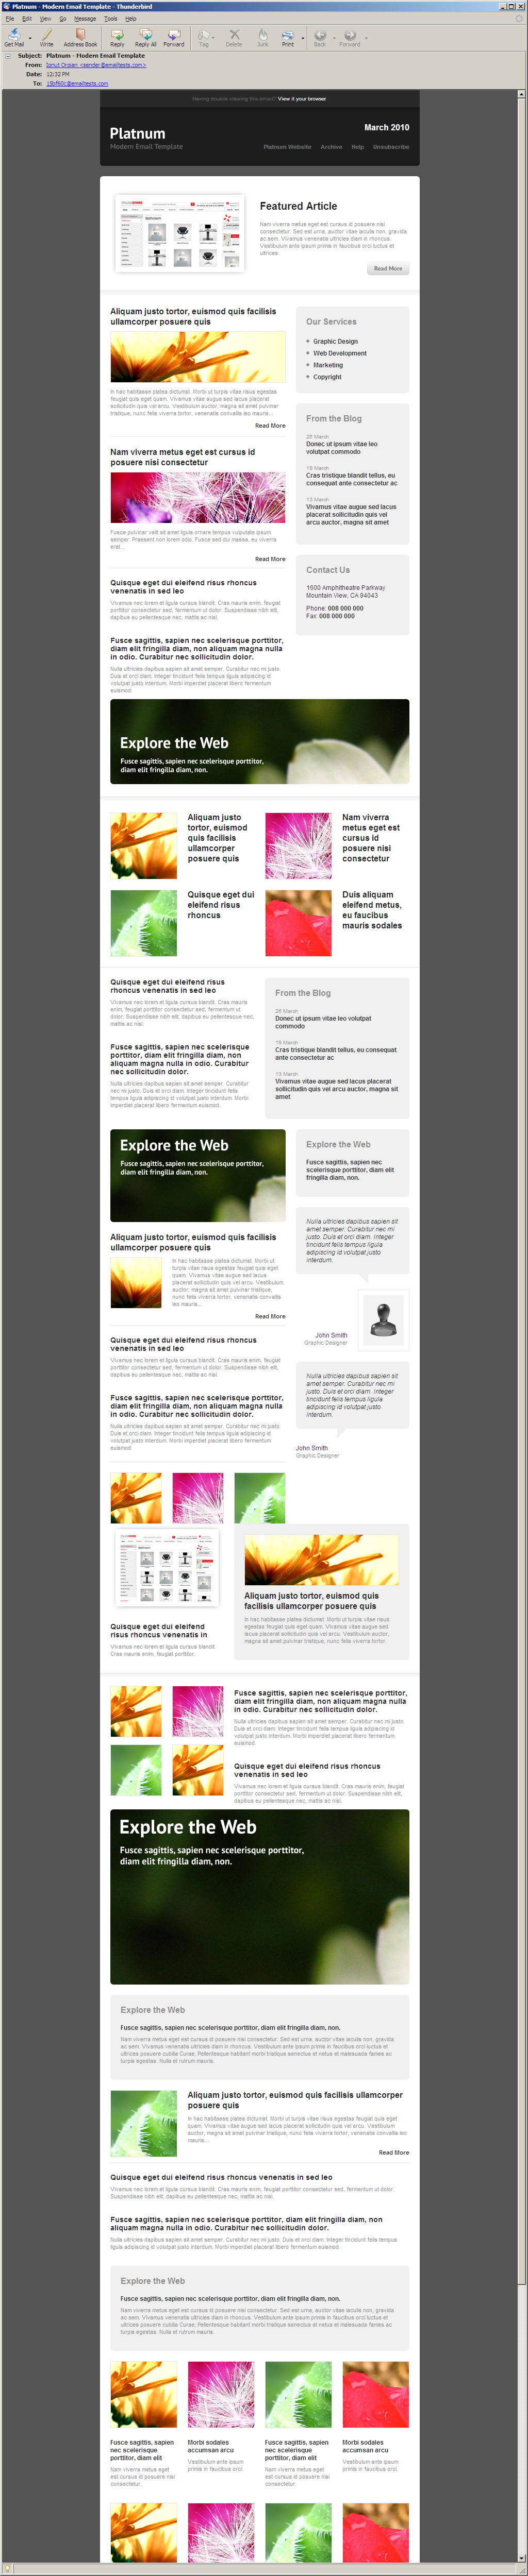 Platnum Email Template, 6 Layouts, 8 Colors - Thunderbird 2.0 - All elements listed.